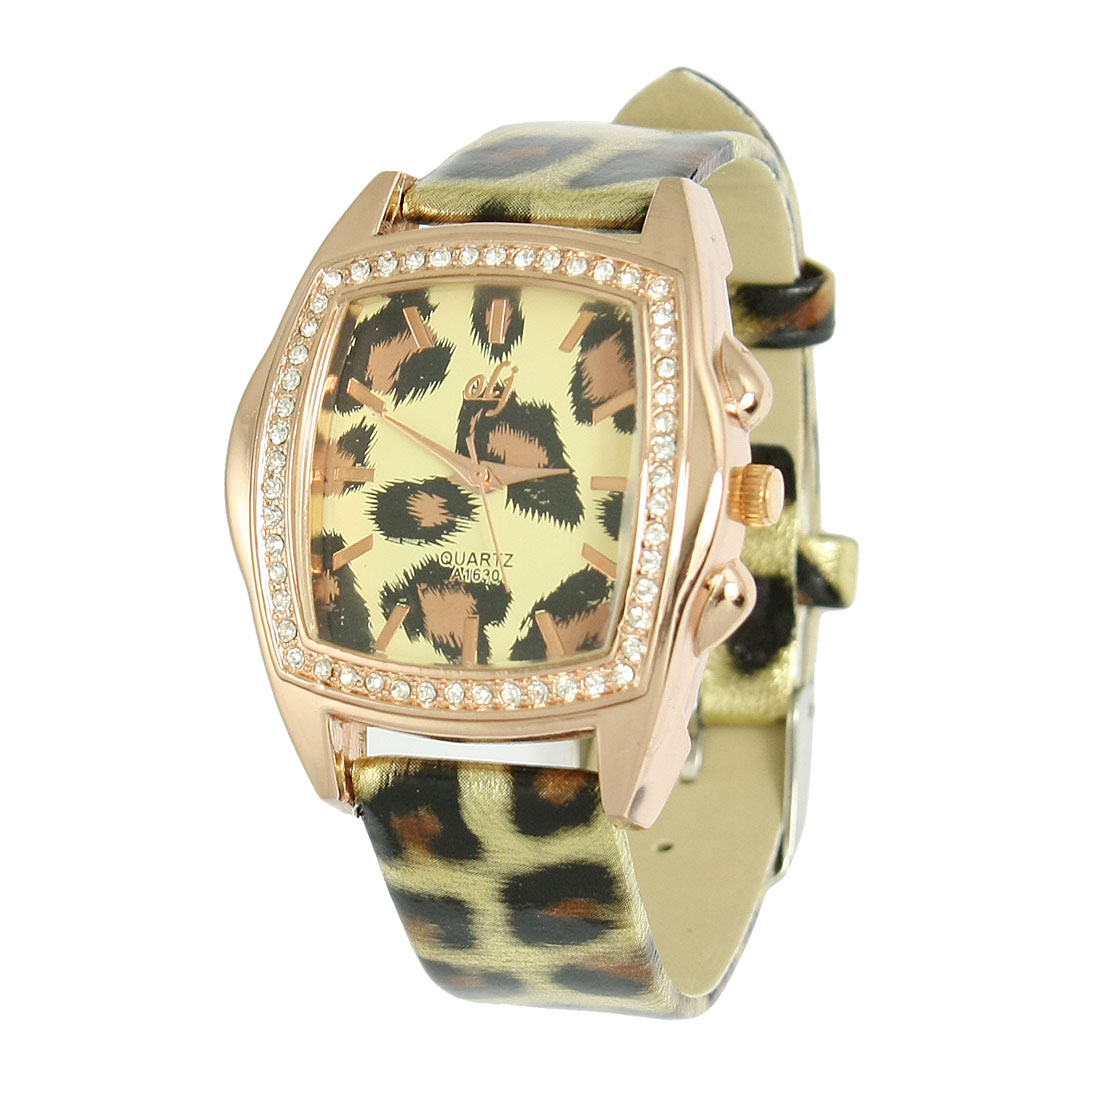 Panther Print Fanx Leather Band Square Metal Base Wrist Watch Gold Tone